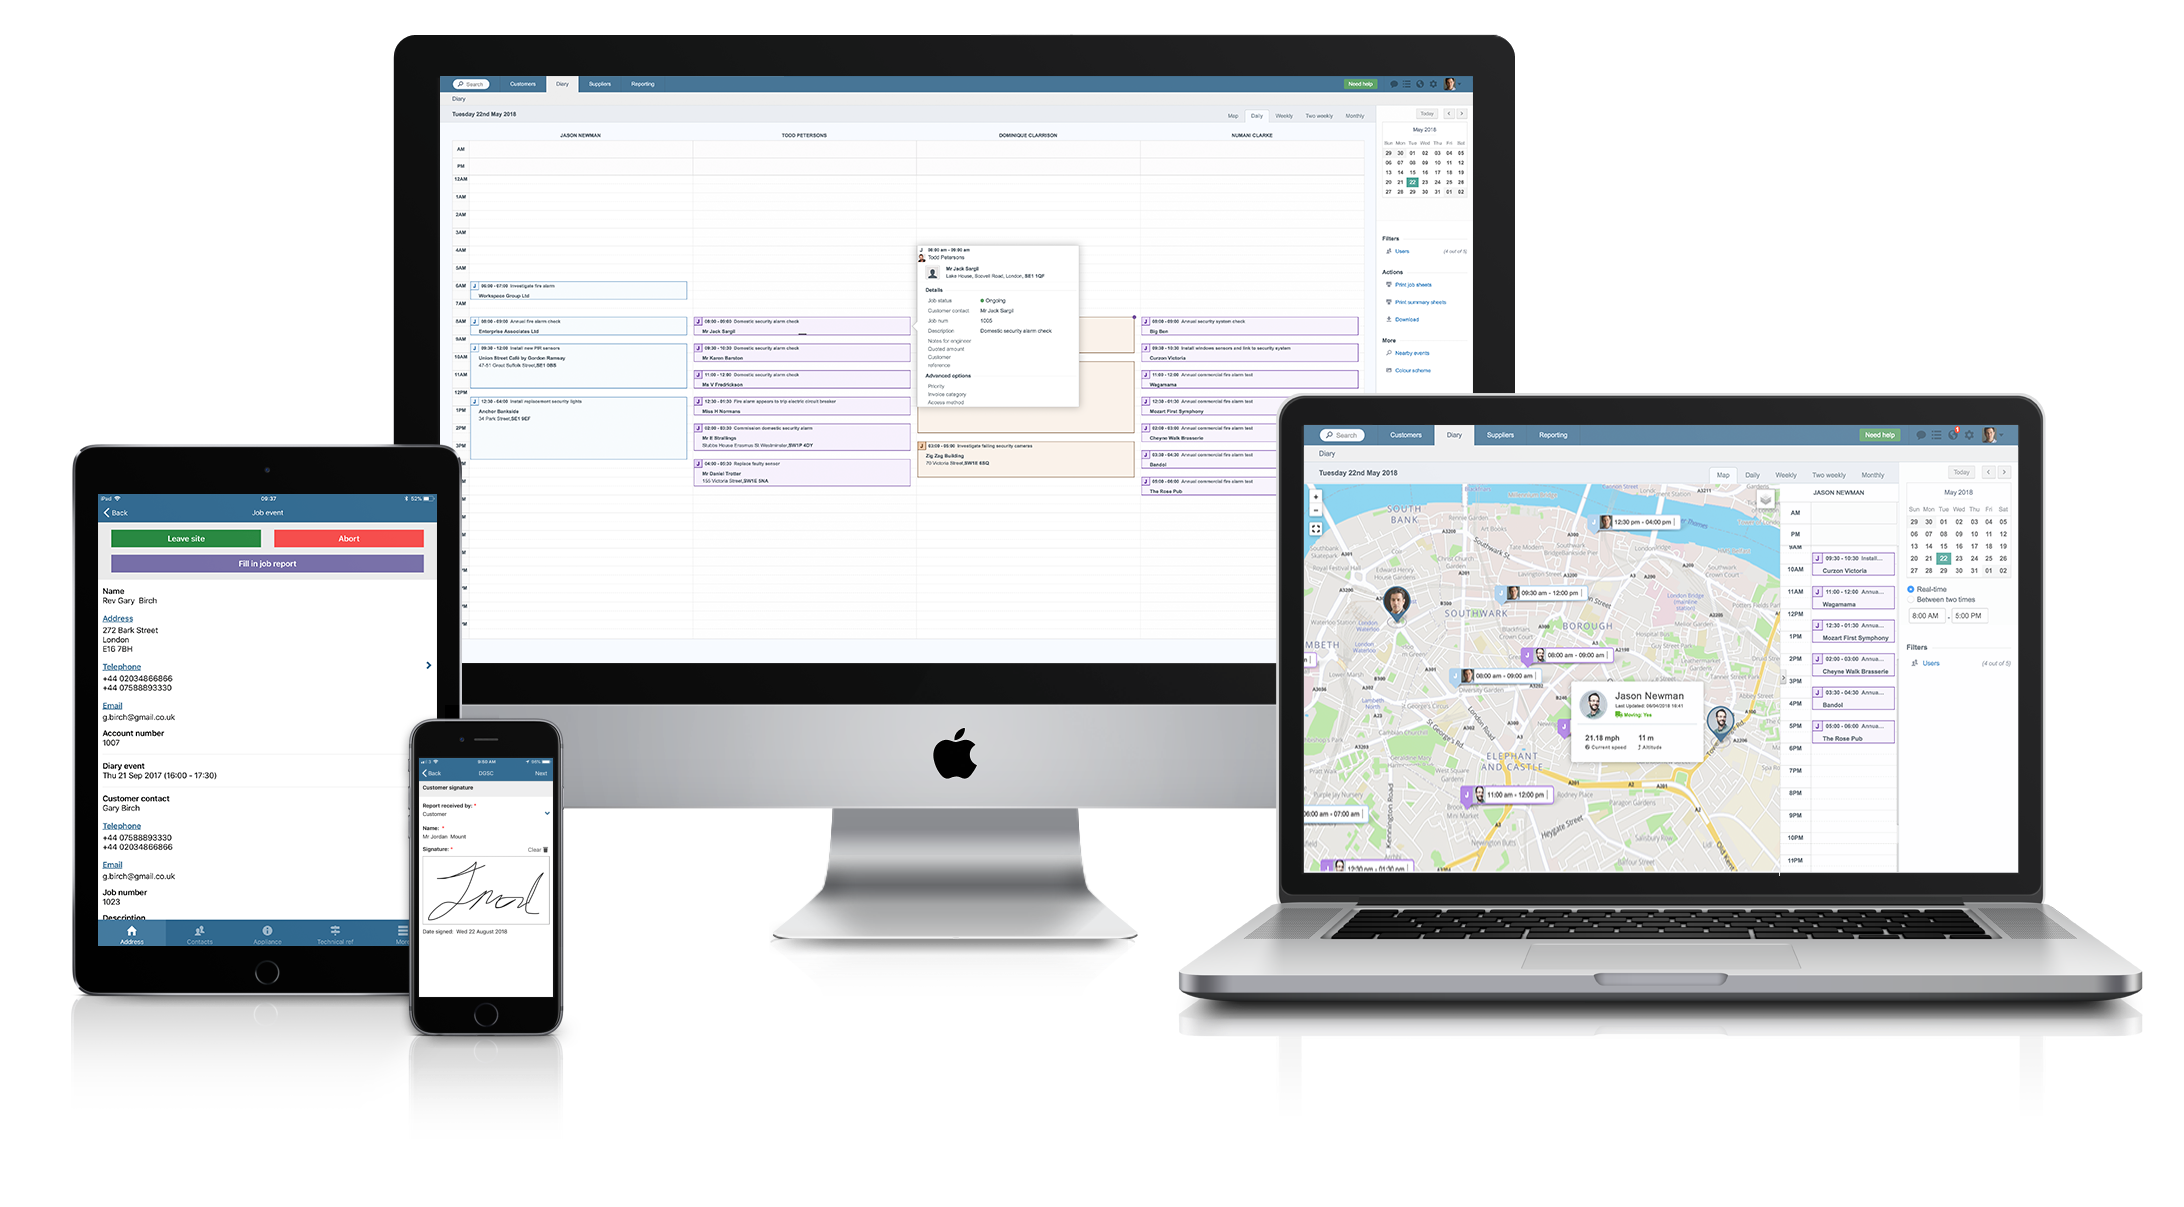 Commusoft screenshot: All-in-one job management software across all your devices.